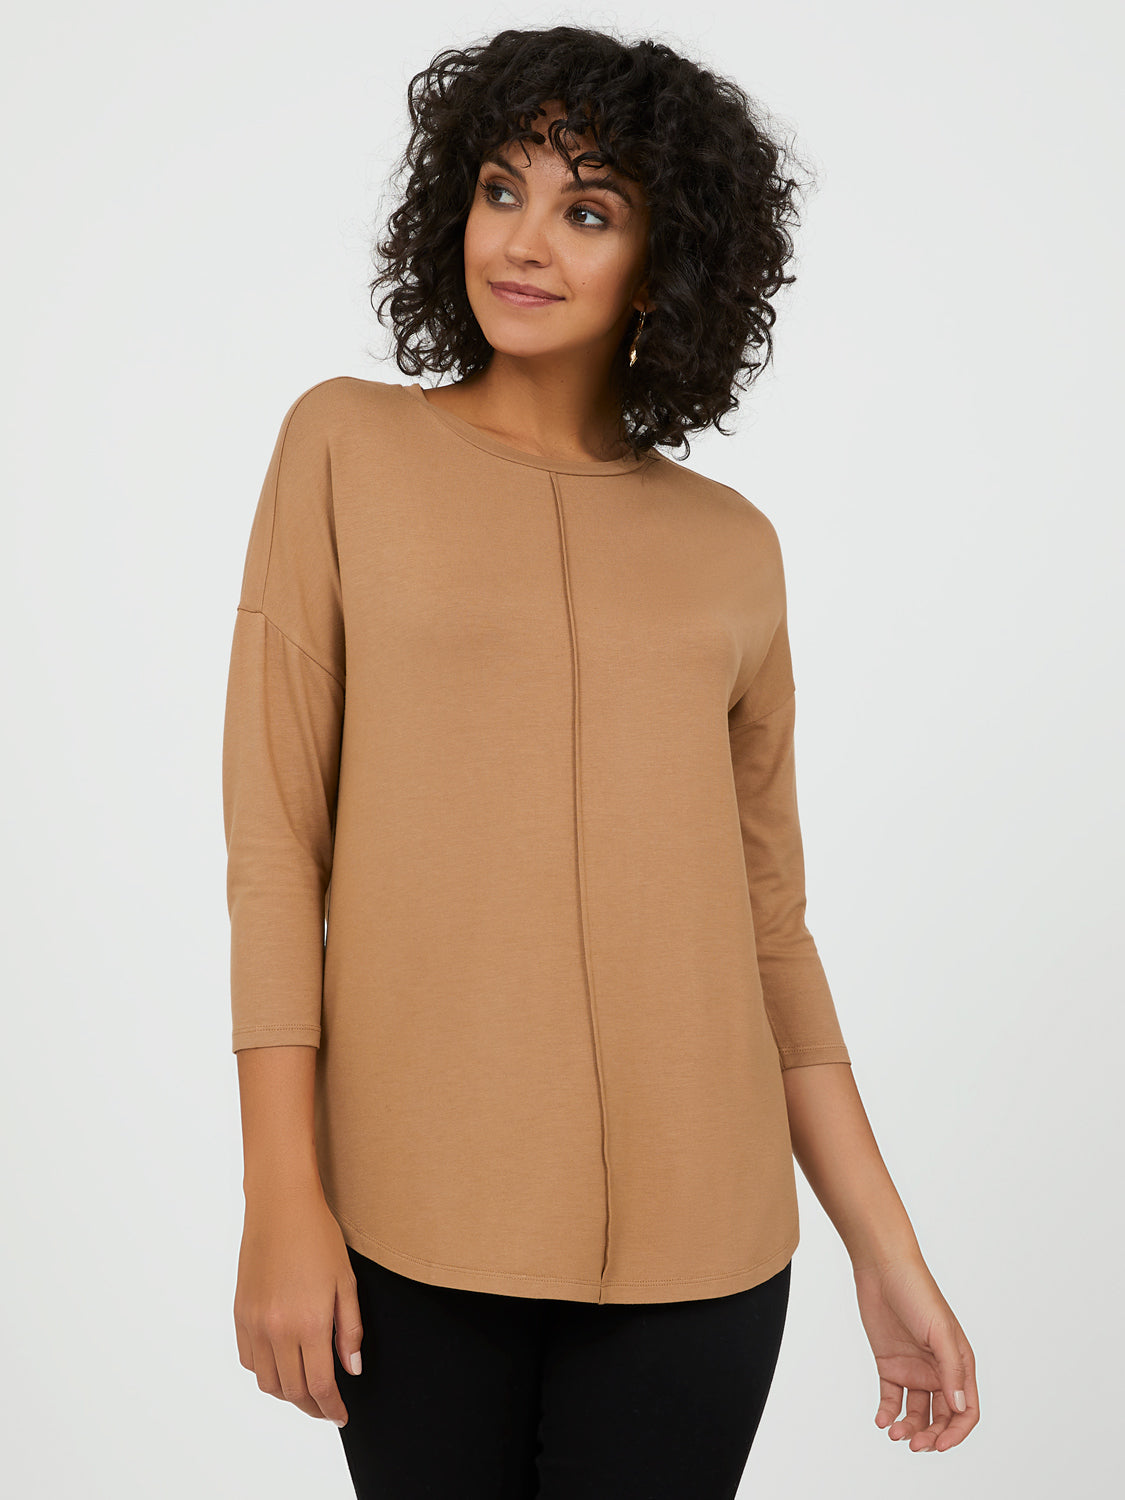 ¾ Sleeve Tunic Tee